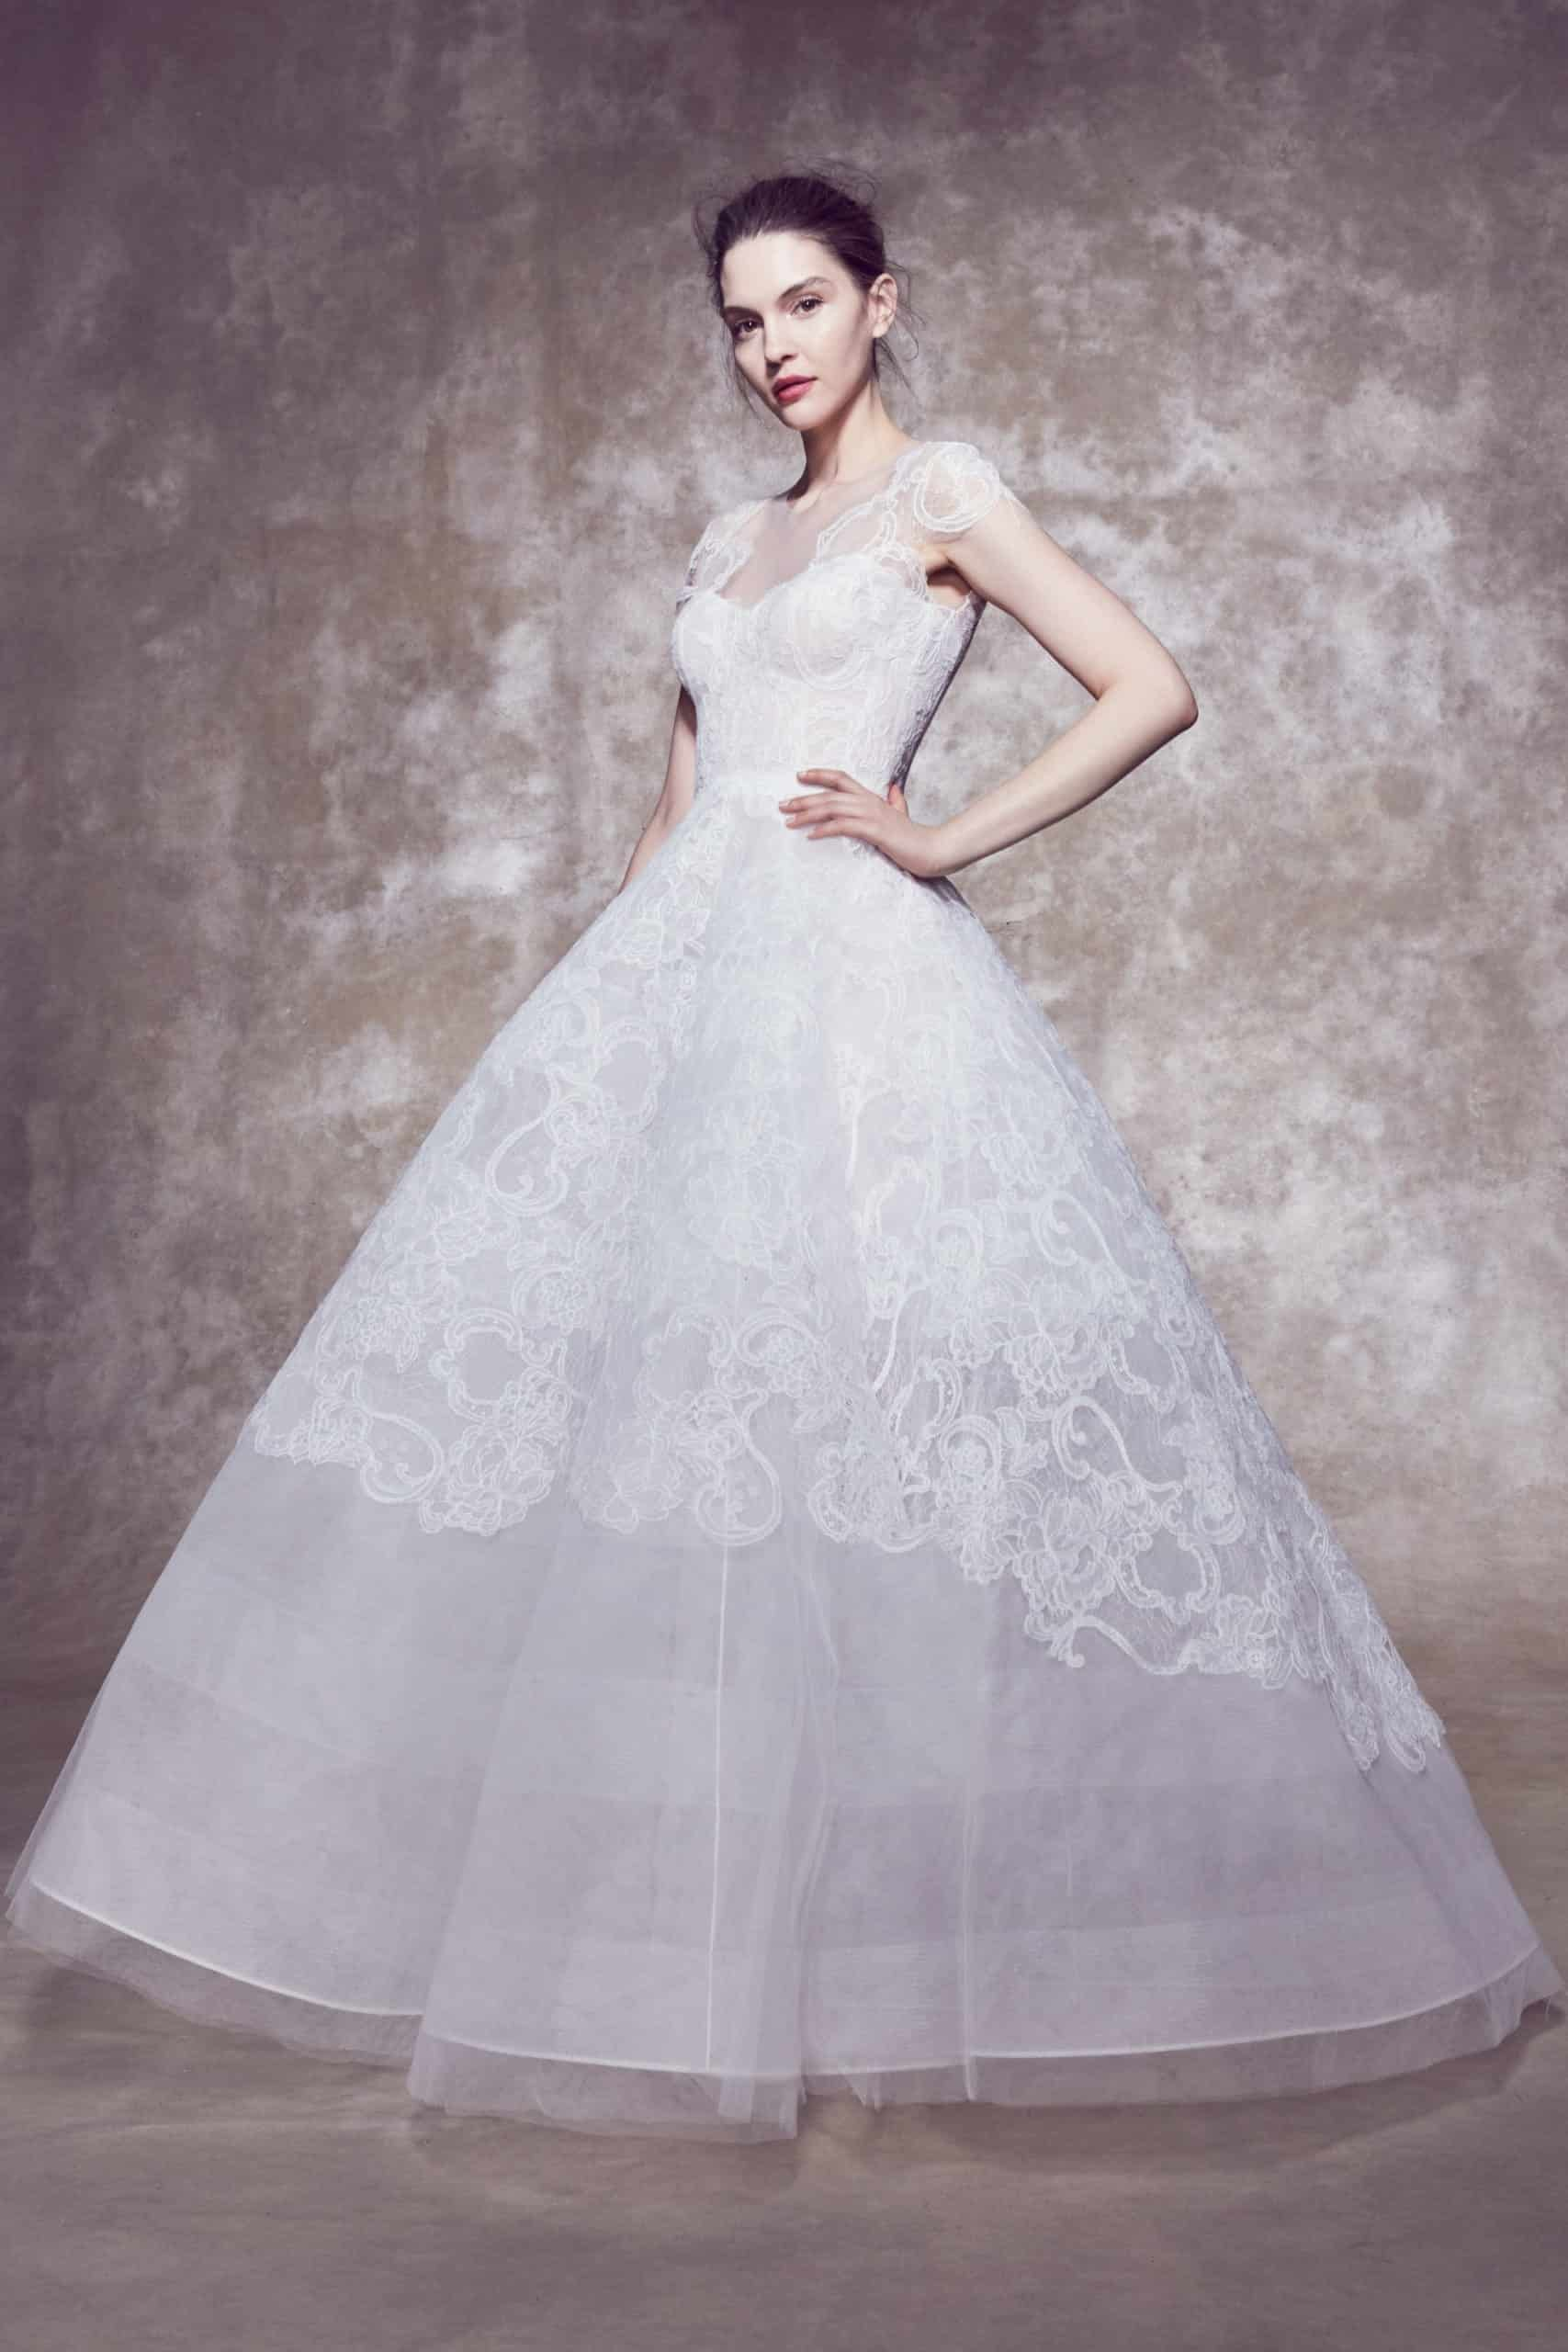 classic wedding dress with lace by Marchesa